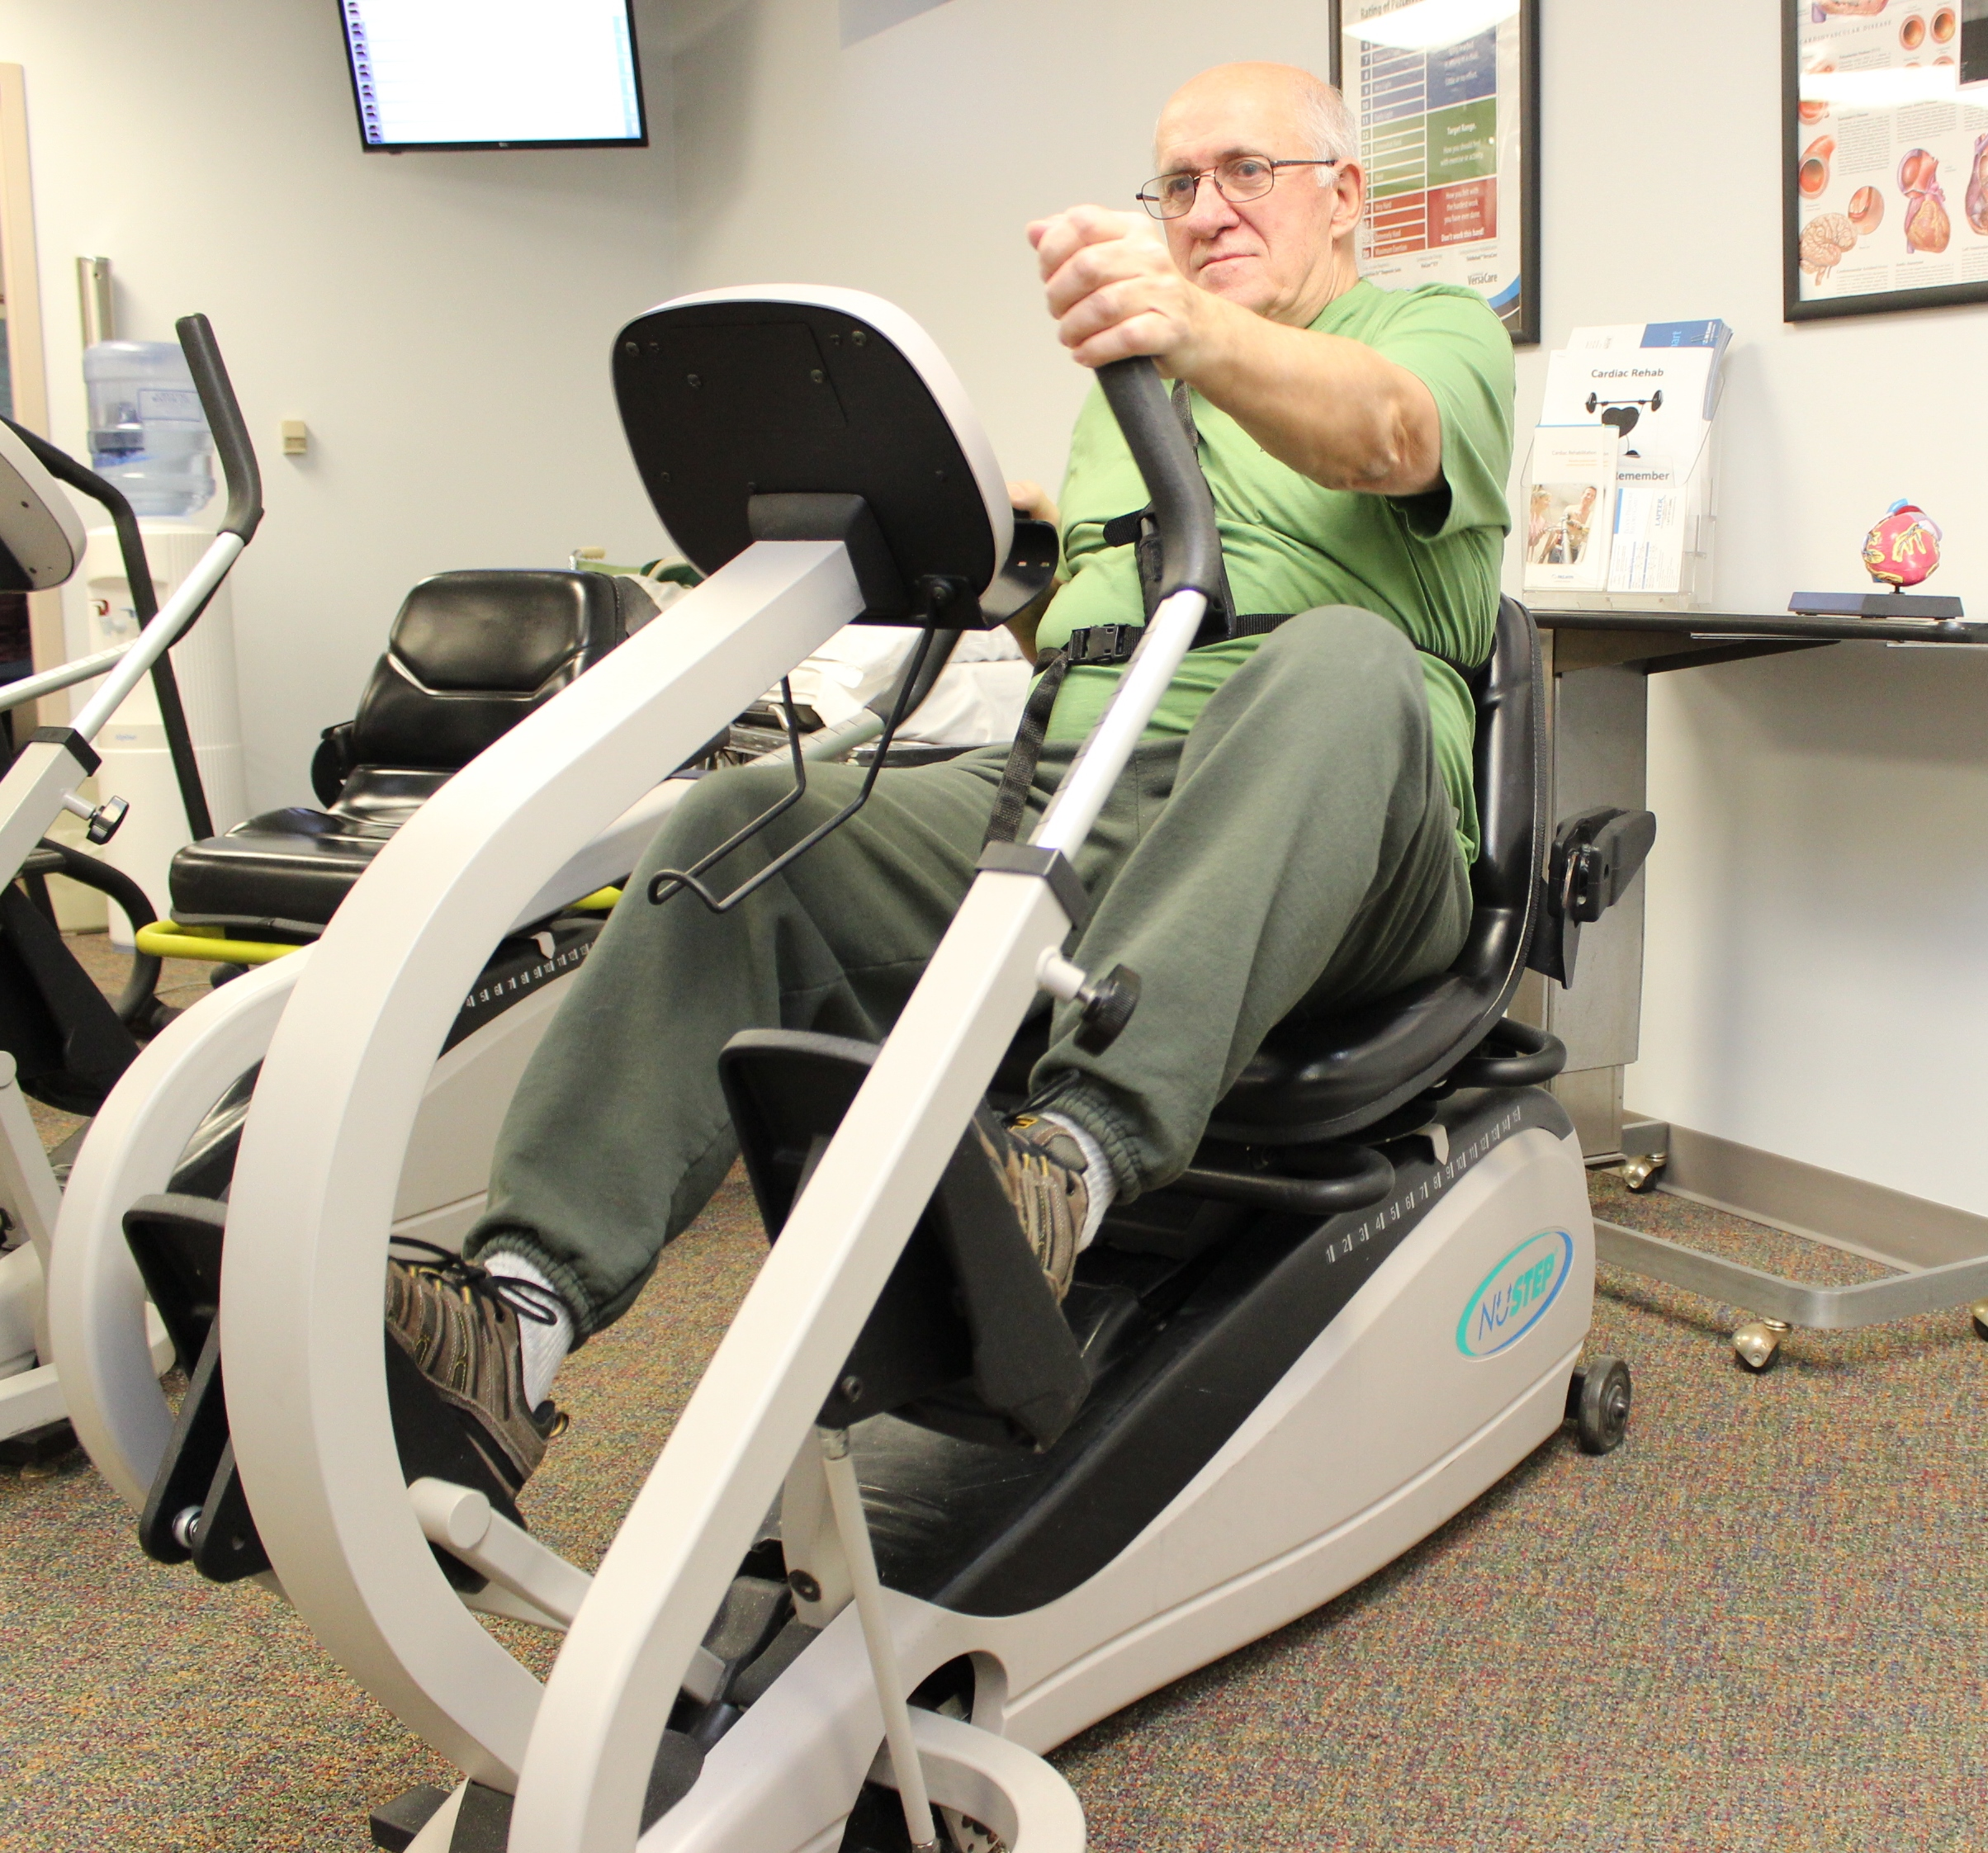 Mike's continued recovery is cardiac rehabilitation